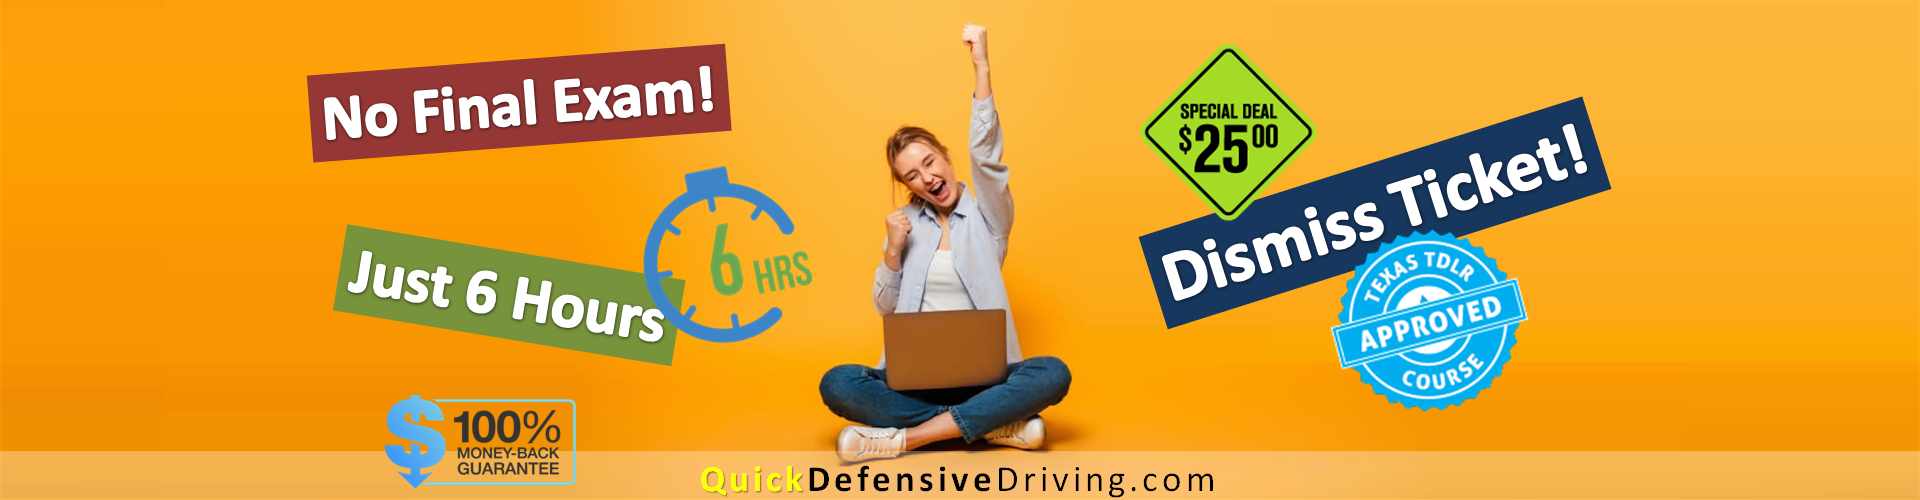 Quick Defensive Driving - Dismiss Tickets - No Final Exam - BBB A - CP018-C3245 Texas Licensed